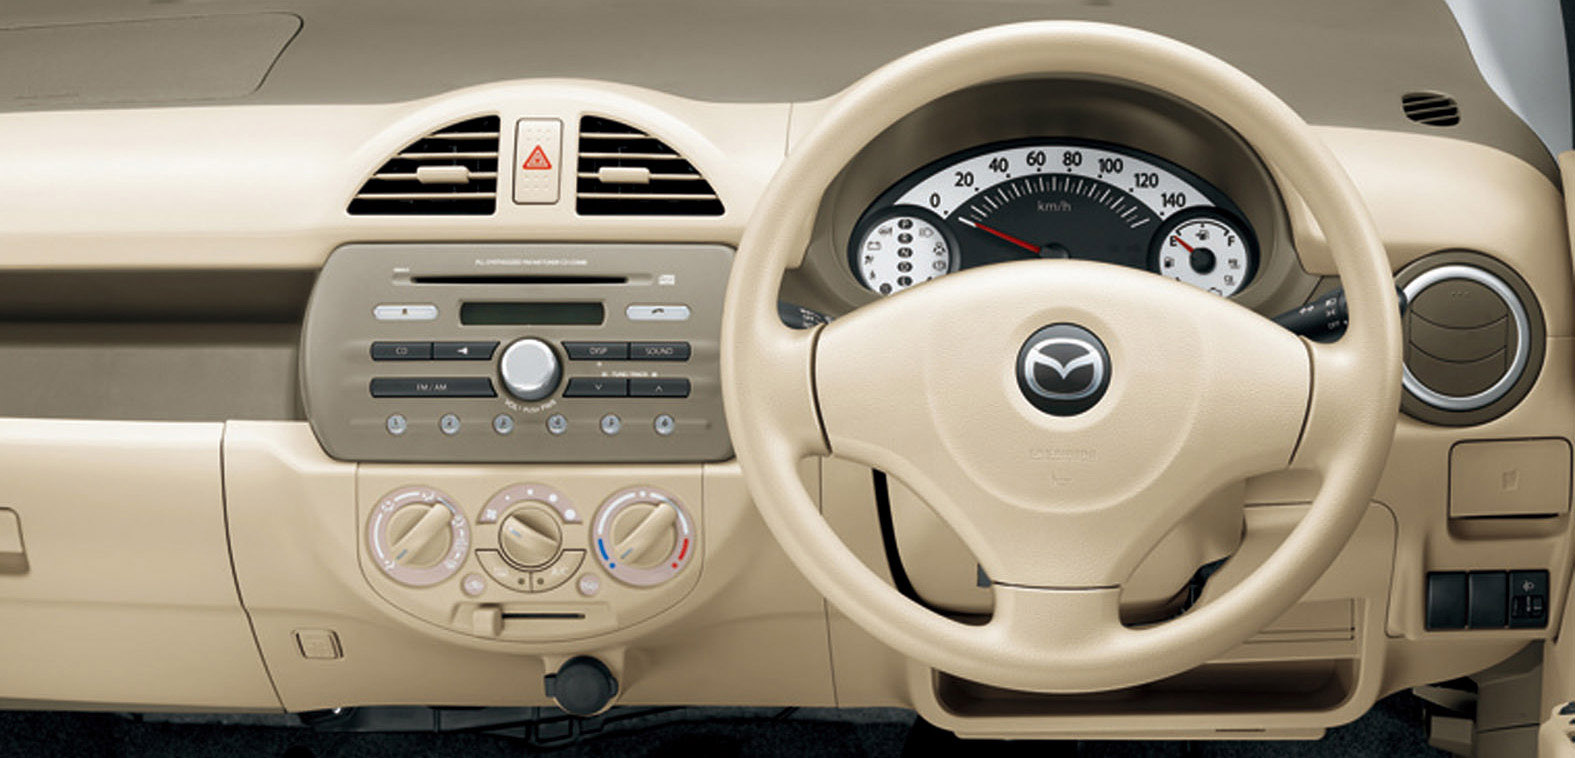 How much does a good car audio system cost